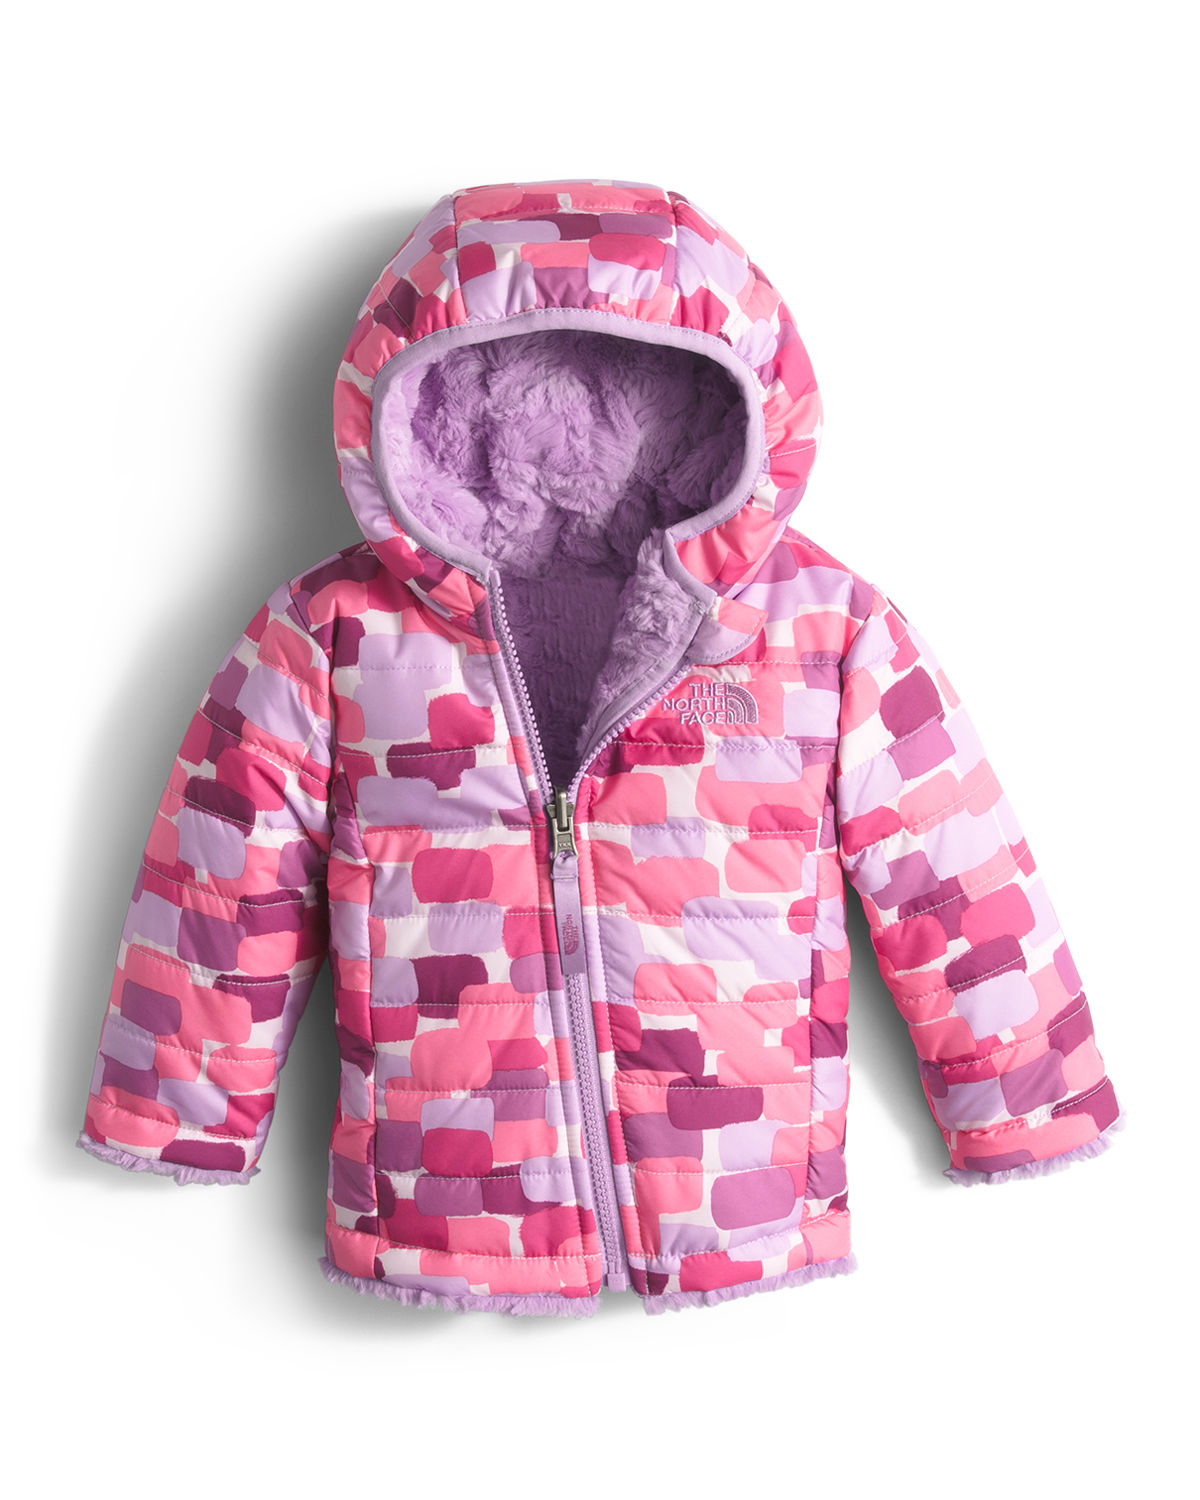 Reversible Mossbud Swirl Hooded Jacket, Size 3-24 Months